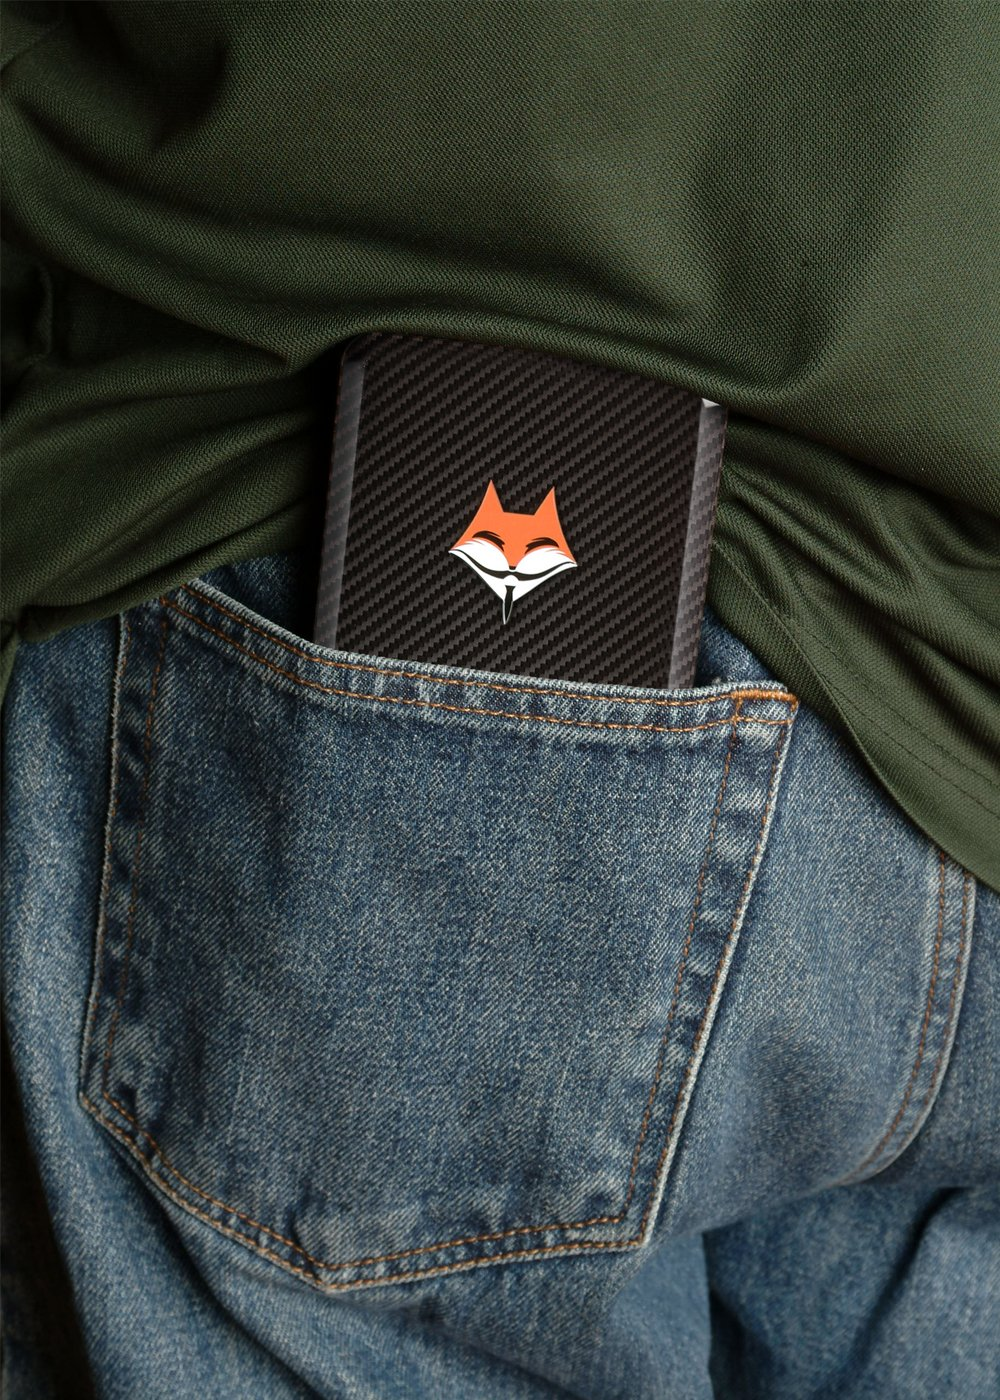 FawkesBOX Smartphone Faraday Cage Shield - Cell, Bluetooth & Wifi Signal Blocker for iPhone X and phones 3''x6''. by FawkesBOX